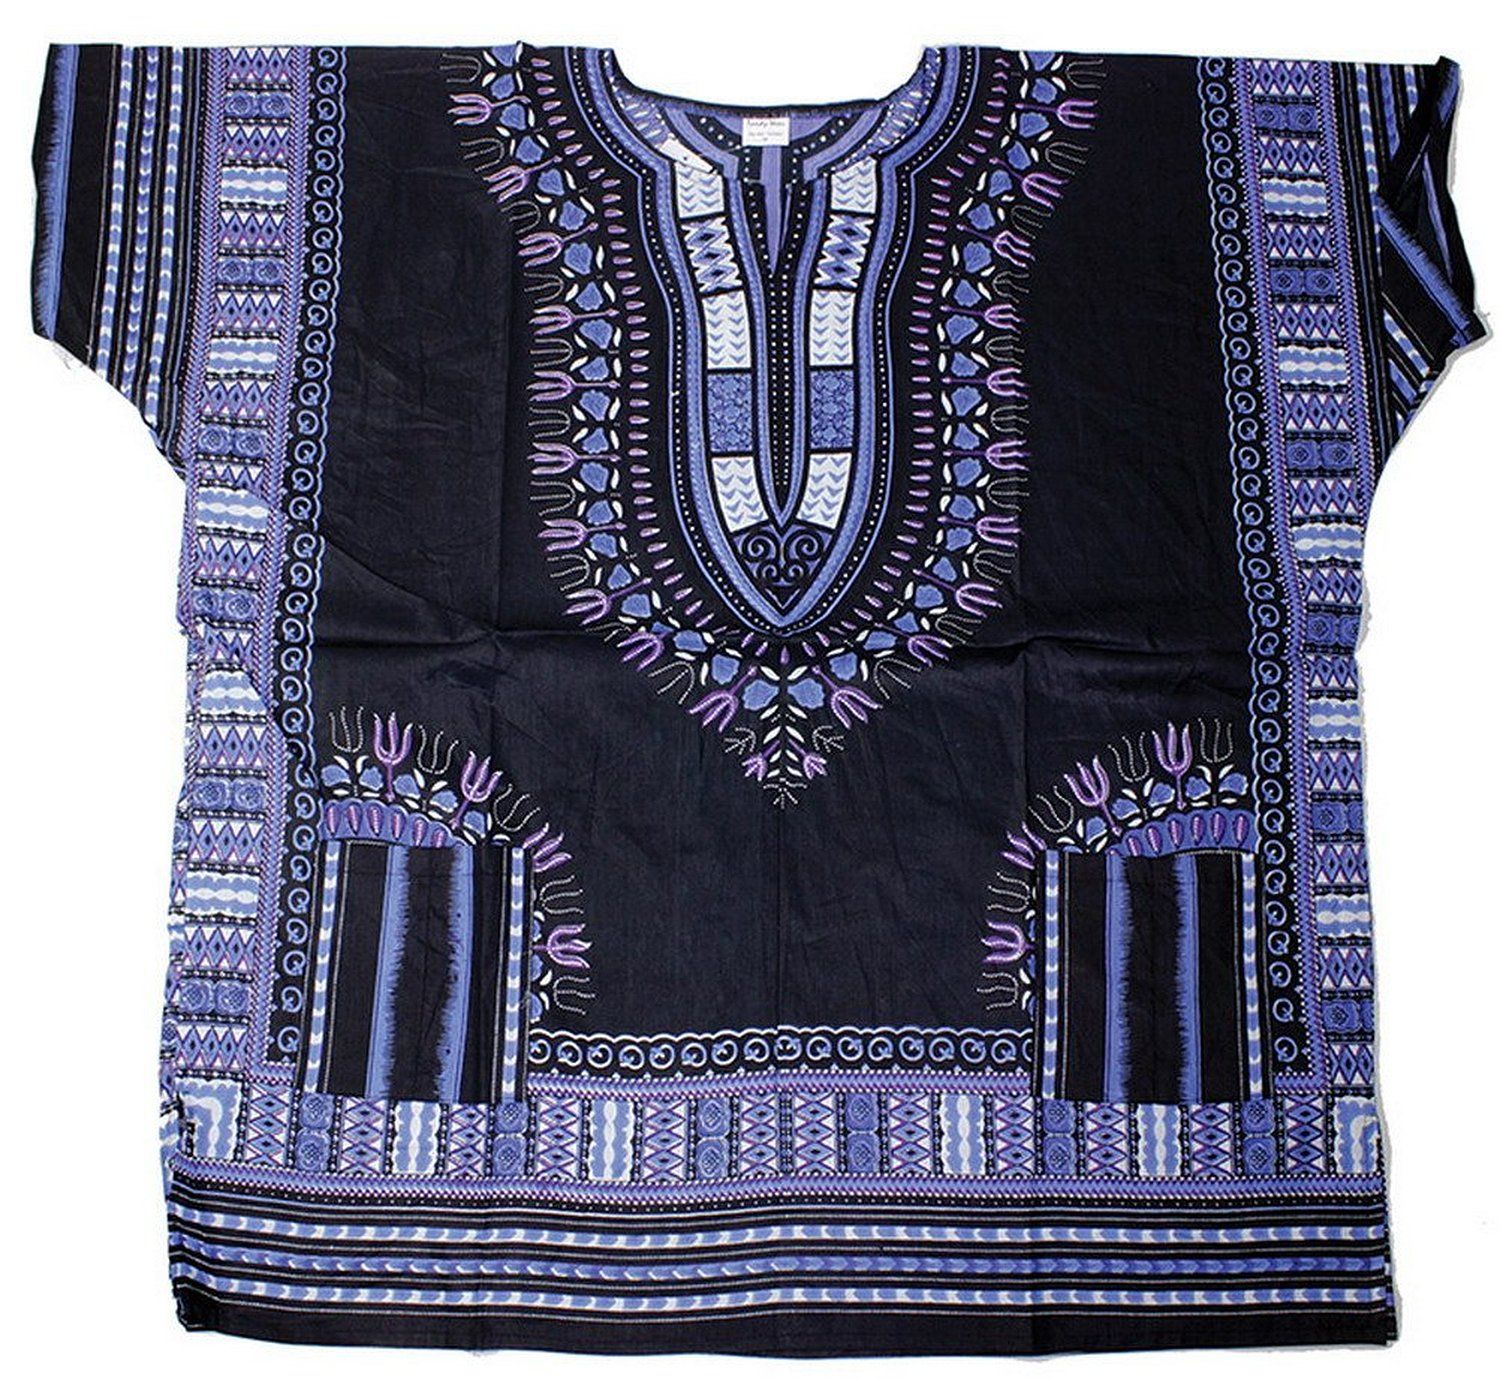 c540ddc8ca0 King-Sized Traditional Print Unisex Dashiki Top - 5 Sizes up to a 74 Inch  Chest - Available in Several Colors (1X